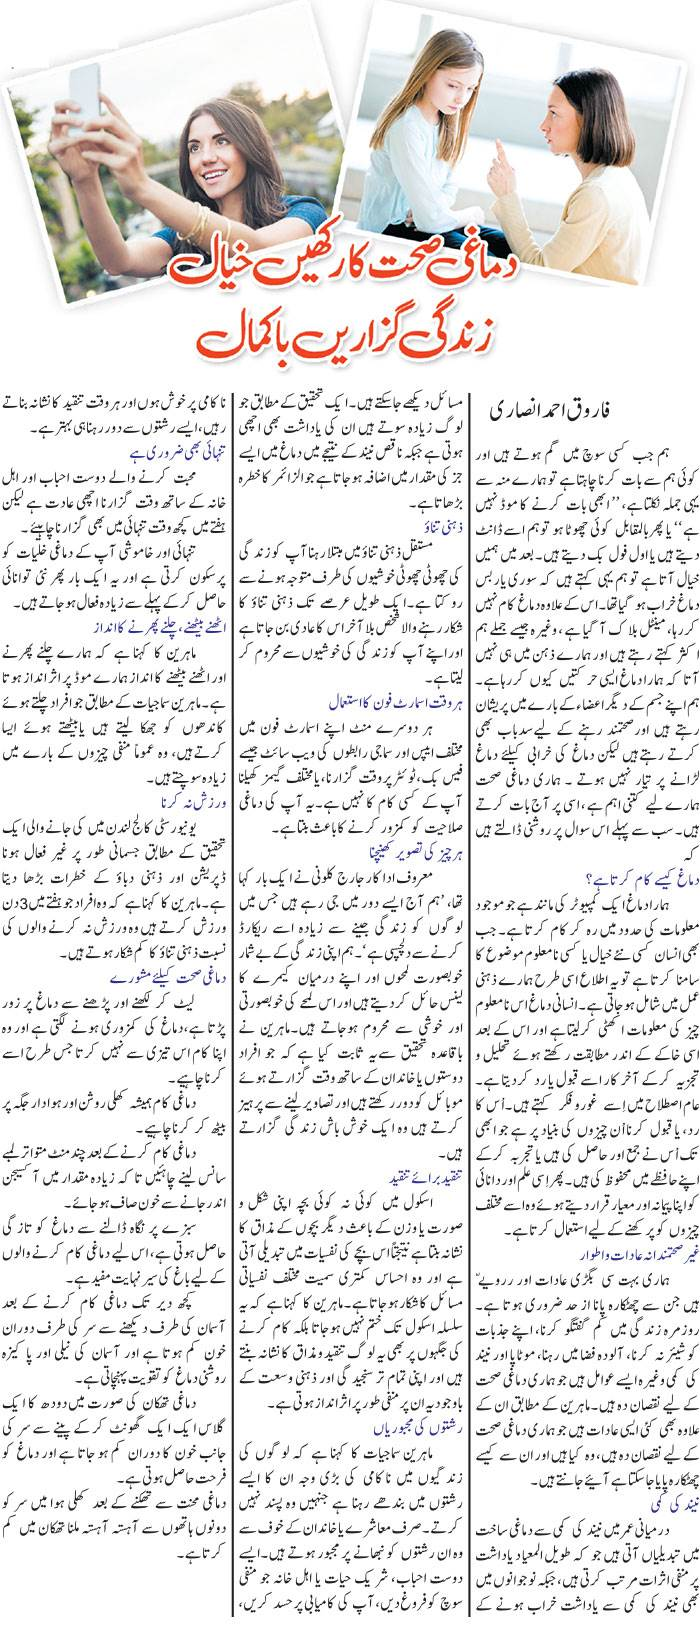 How To Improve Brain Health? Tips in Urdu & English